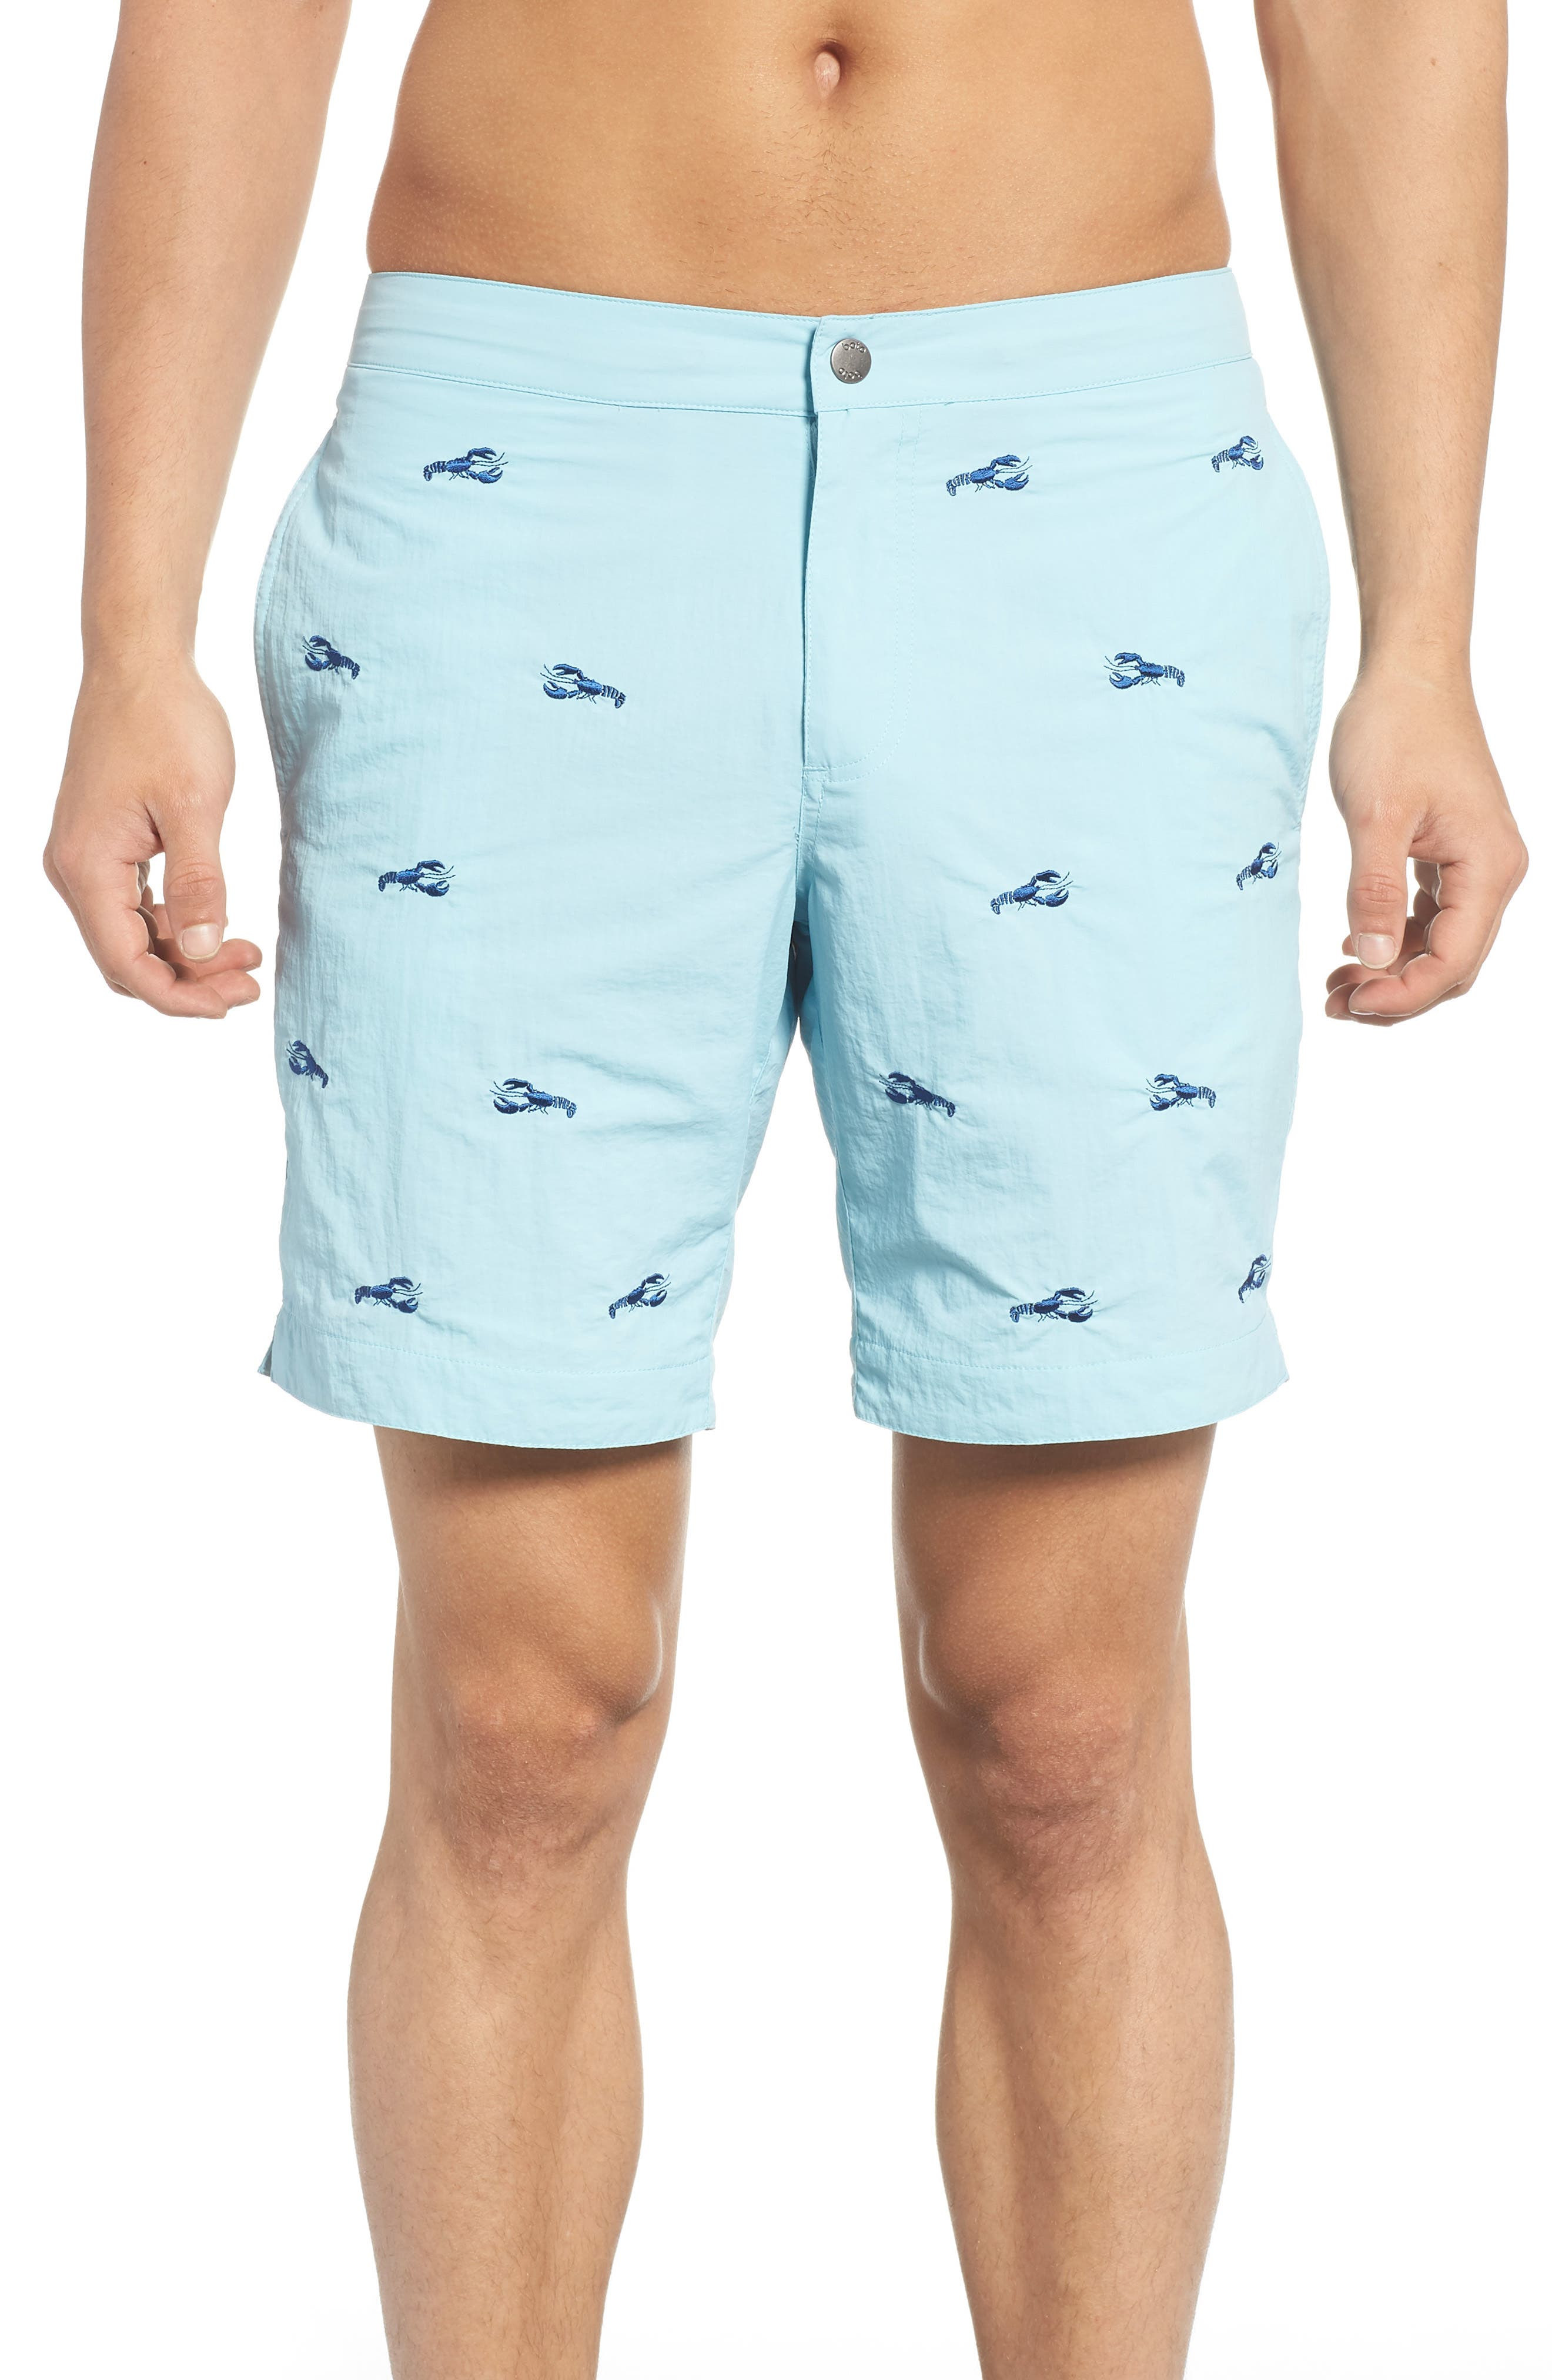 Aruba Embroidered Lobster Swim Trunks,                         Main,                         color, Aqua Embroidered Lobsters